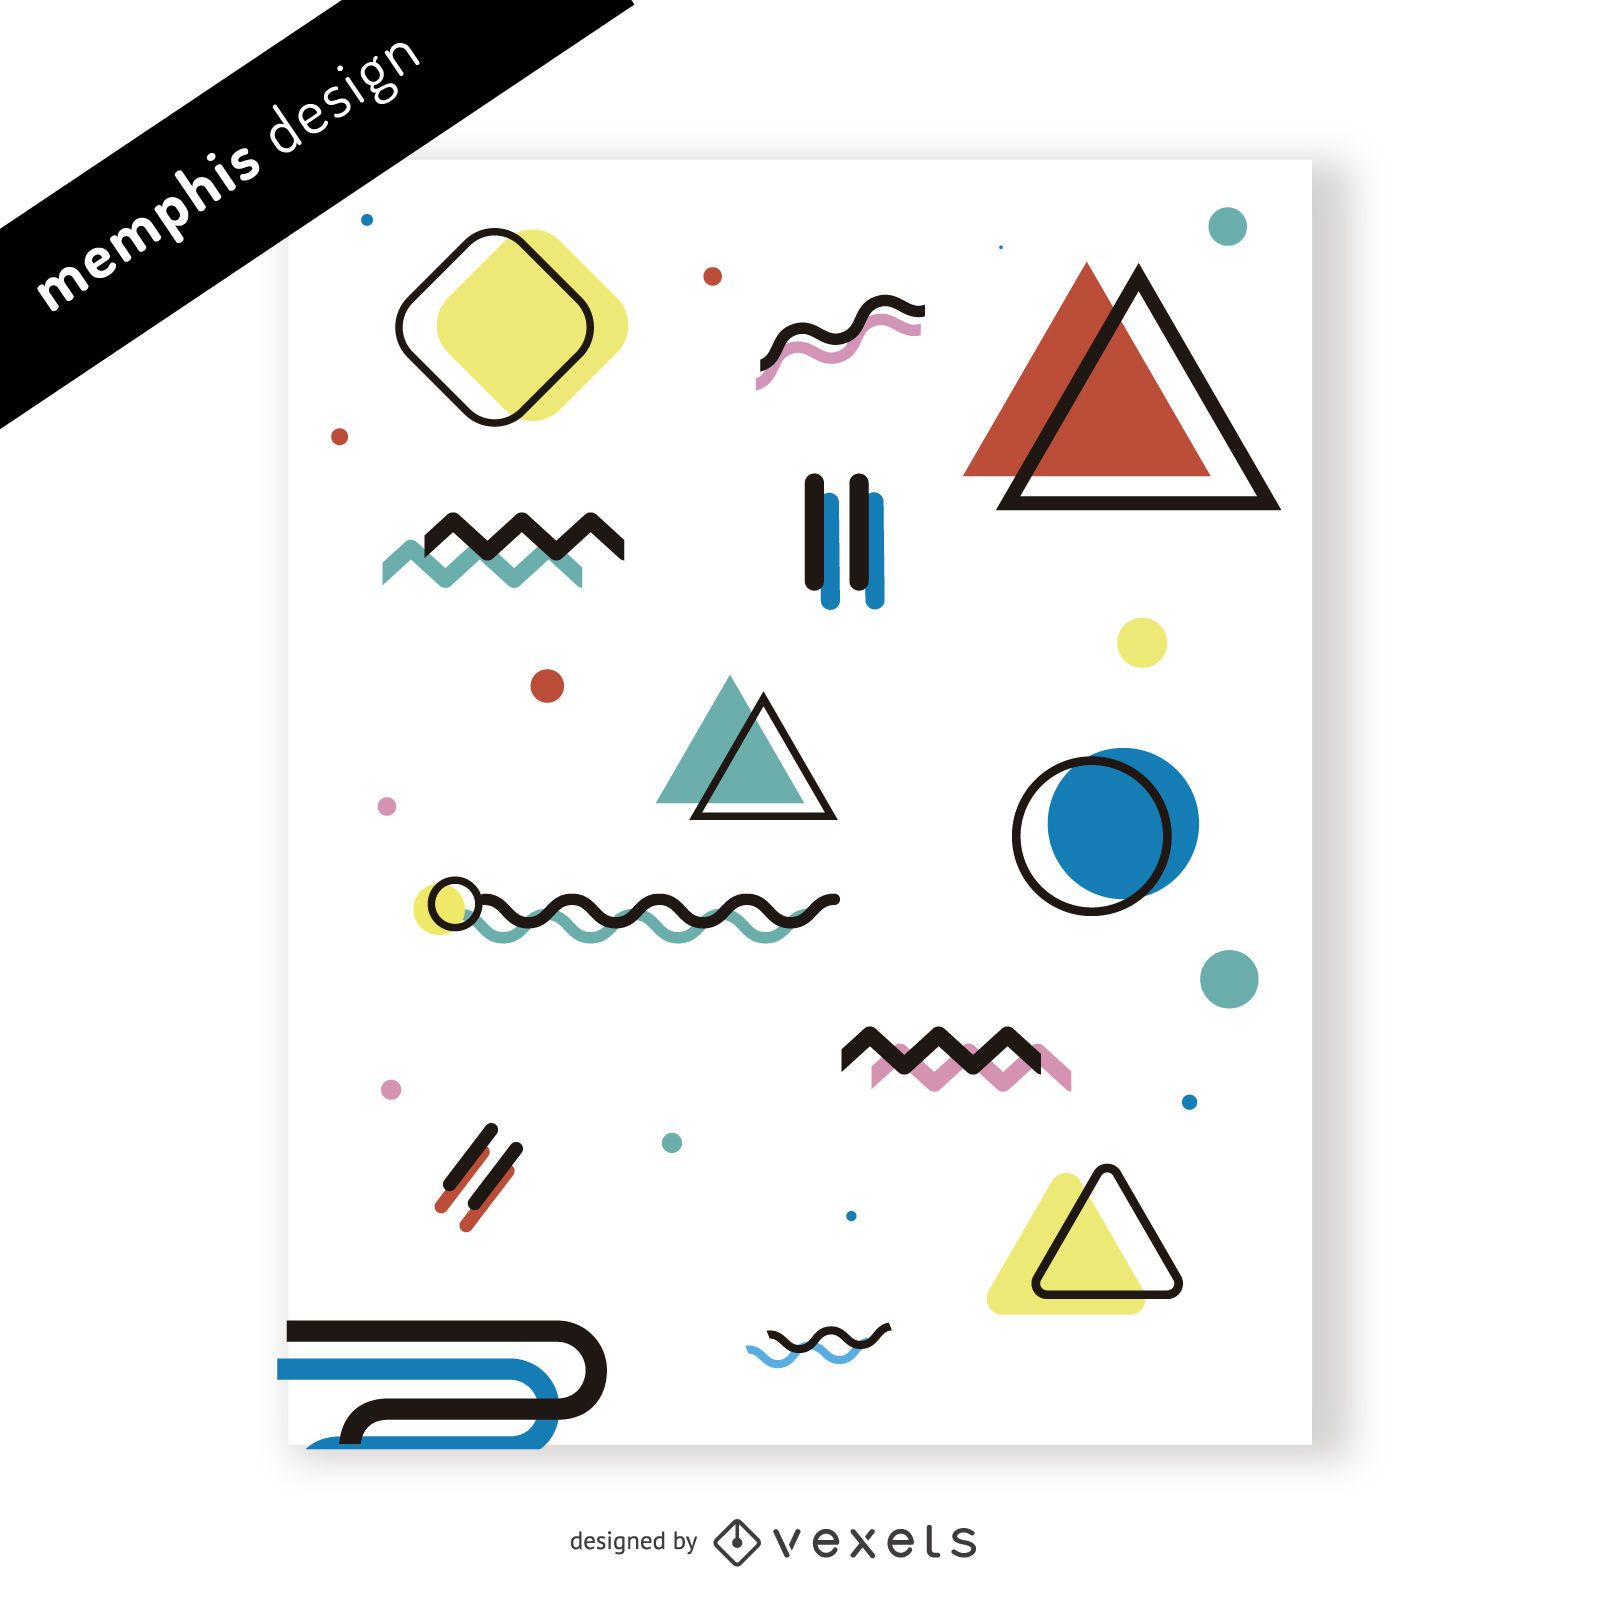 Bright memphis design with shapes and colors